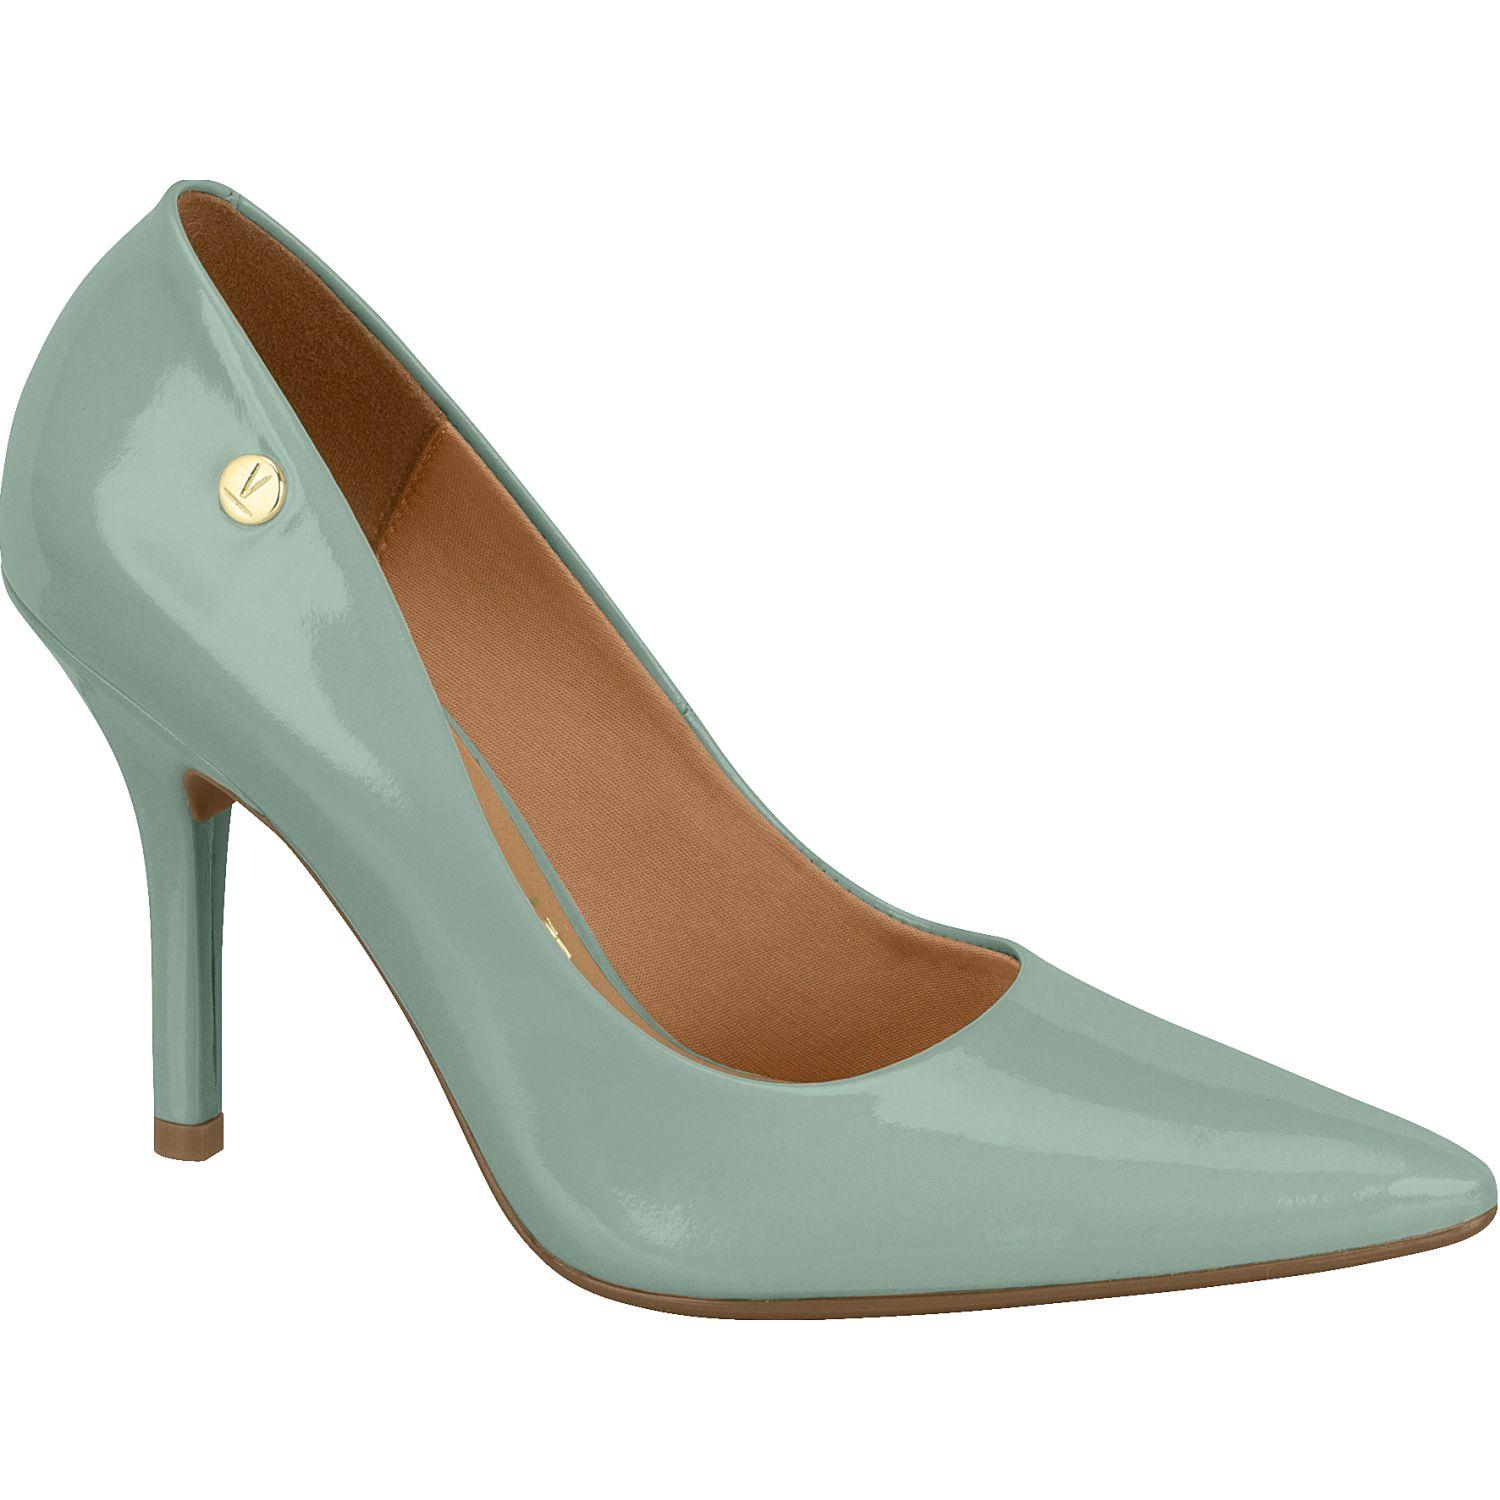 VIZZANO 1184.1101.13488 verde Verde Estiletos y Pumps